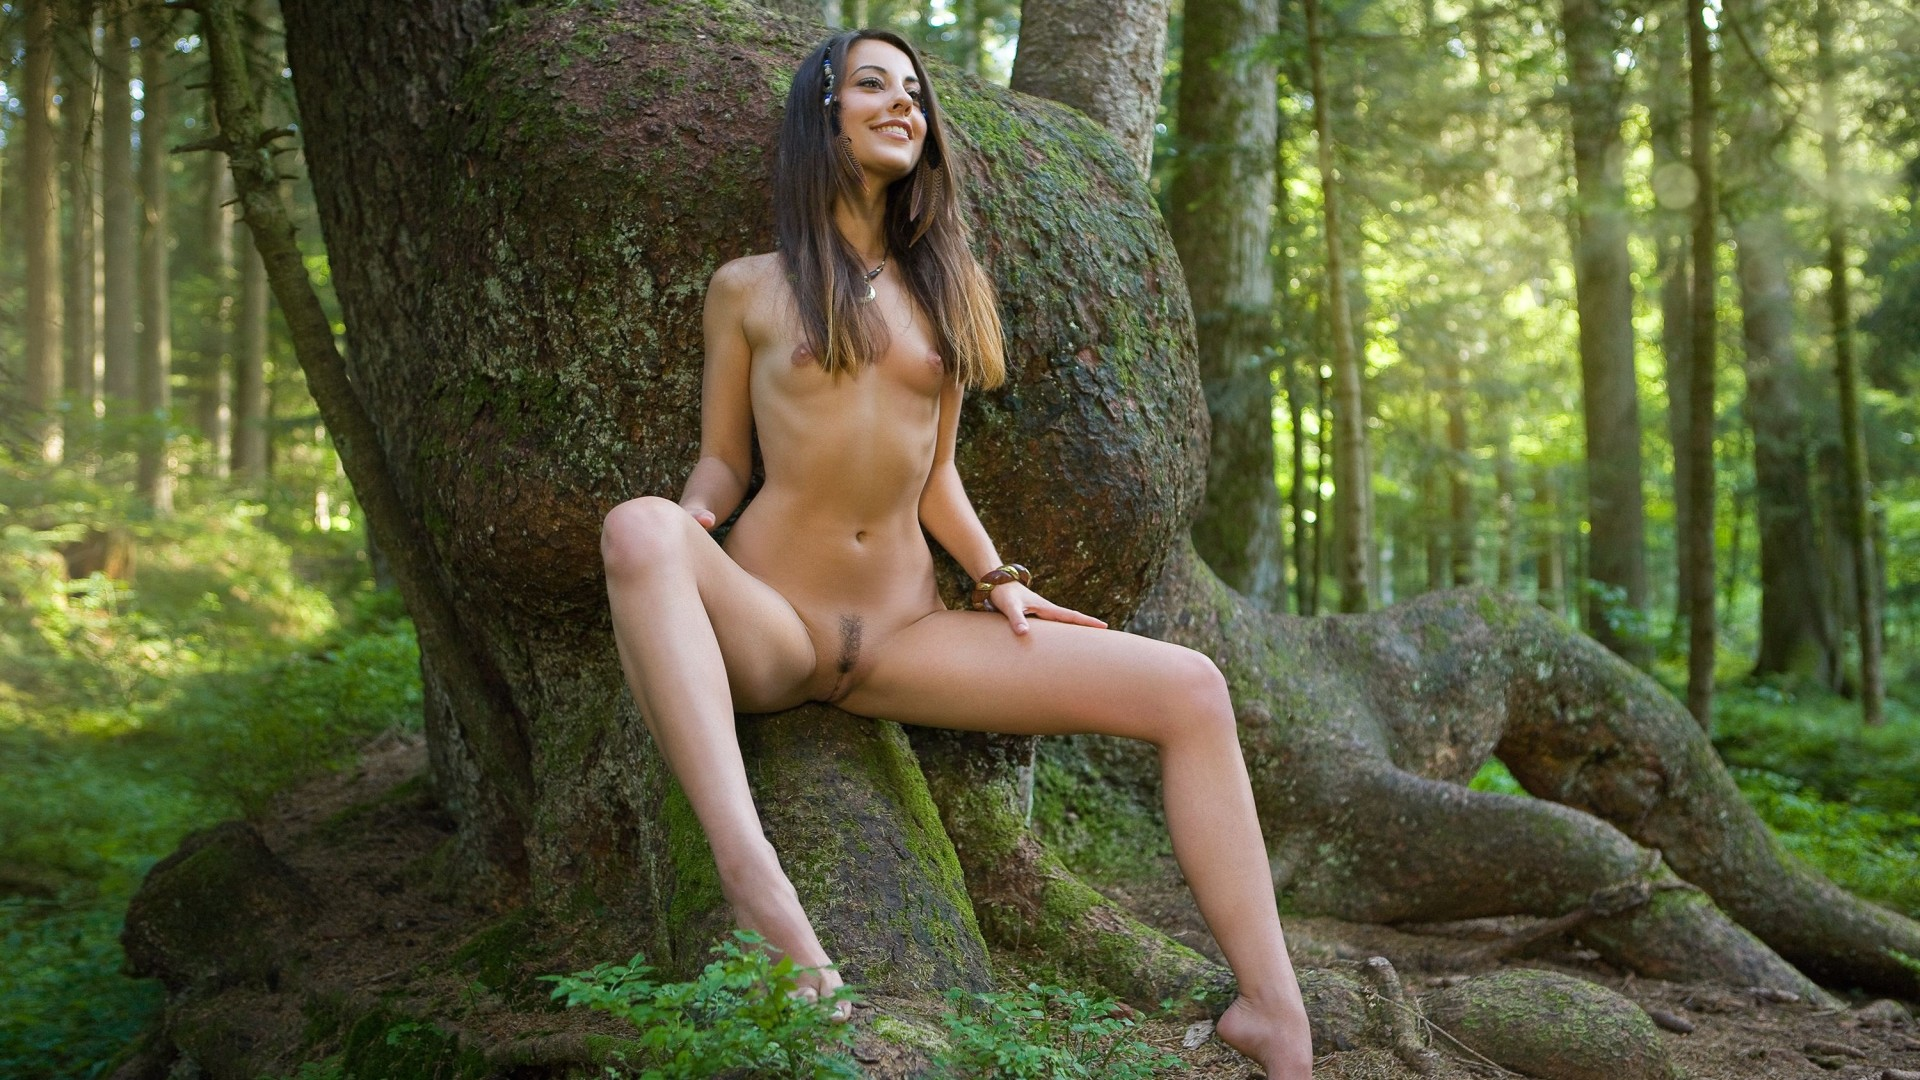 Erotic fantasy orges fucking me in forest  hentia scene